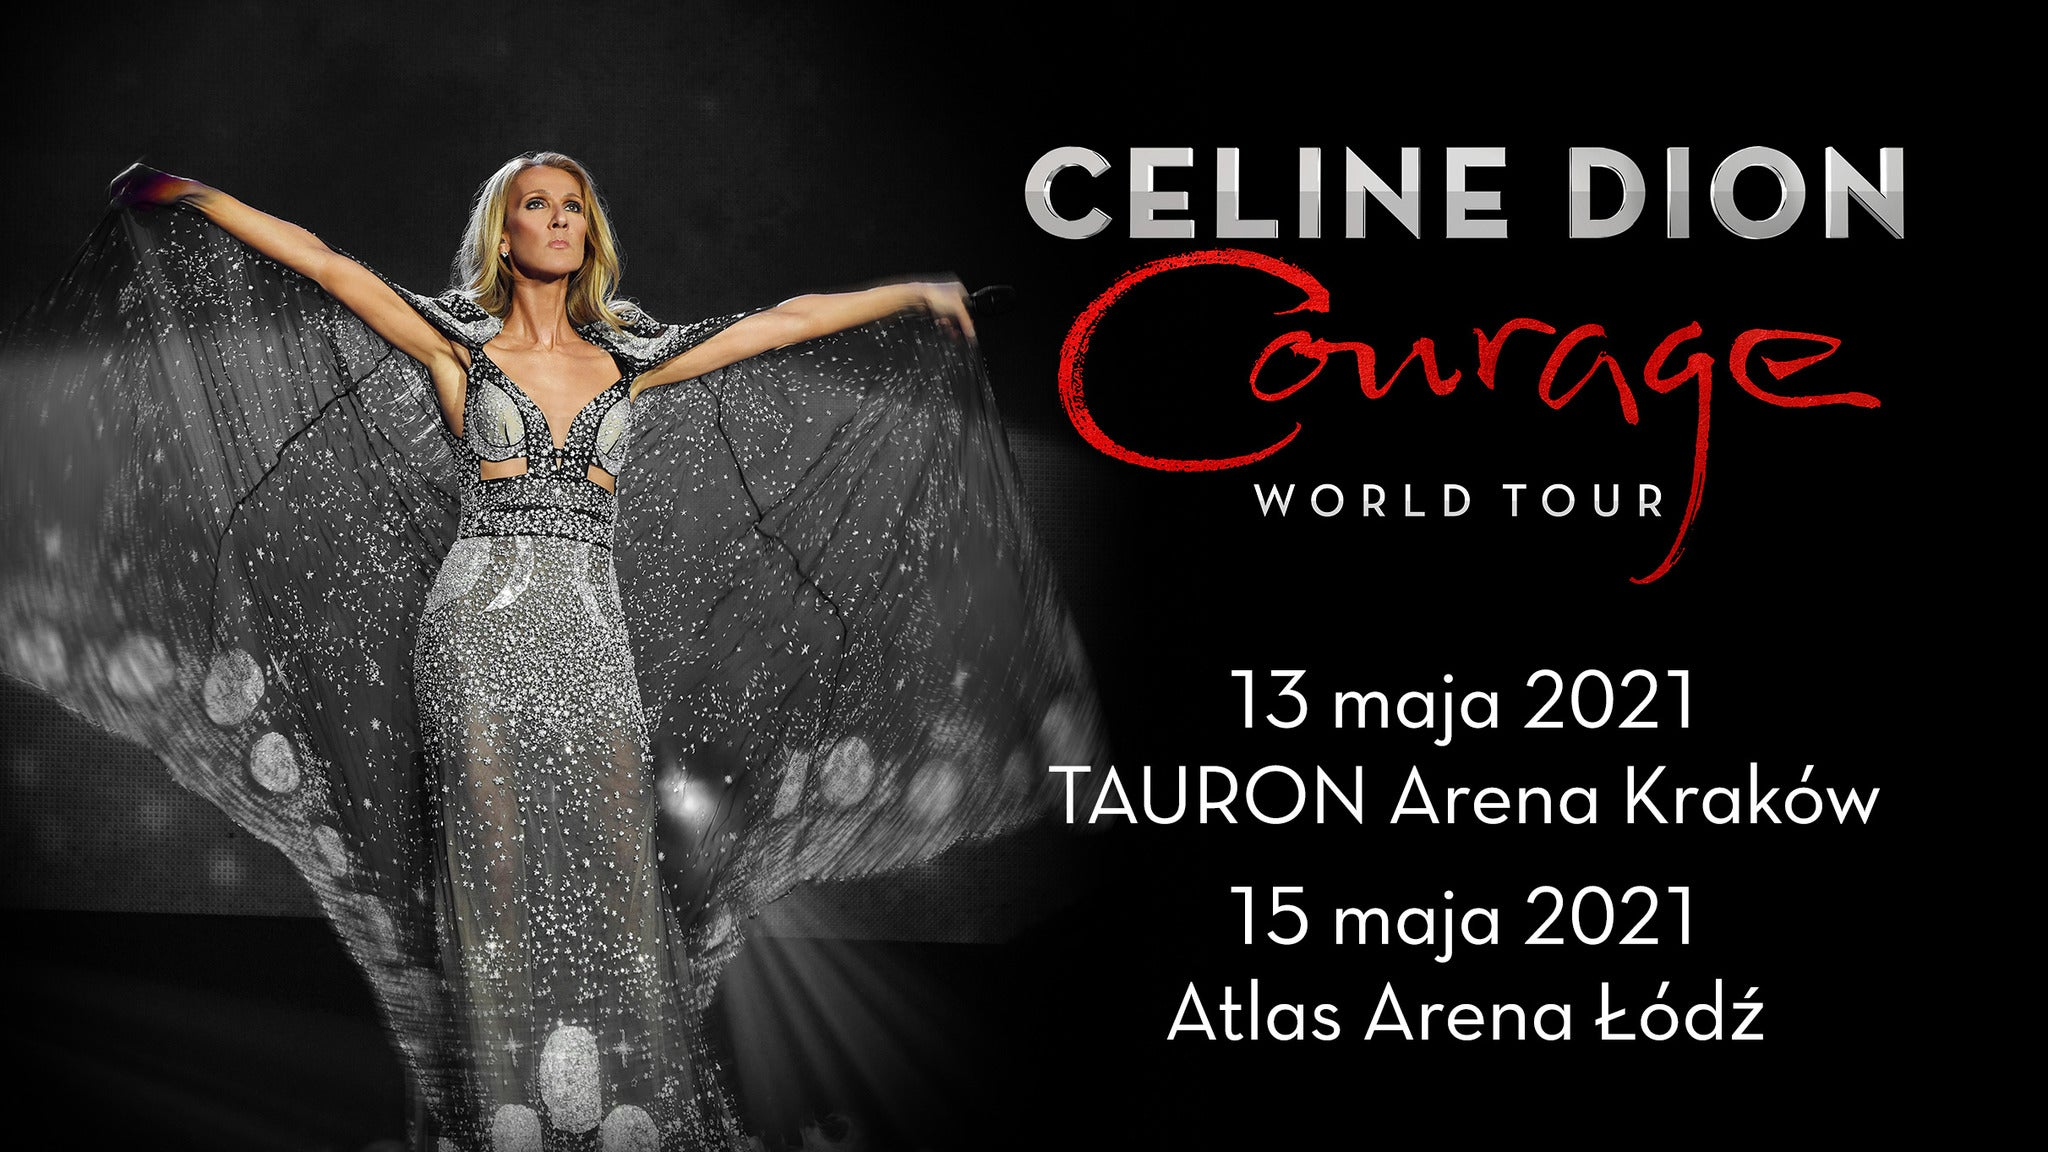 Celine Dion: Courage World Tour at Capital One Arena